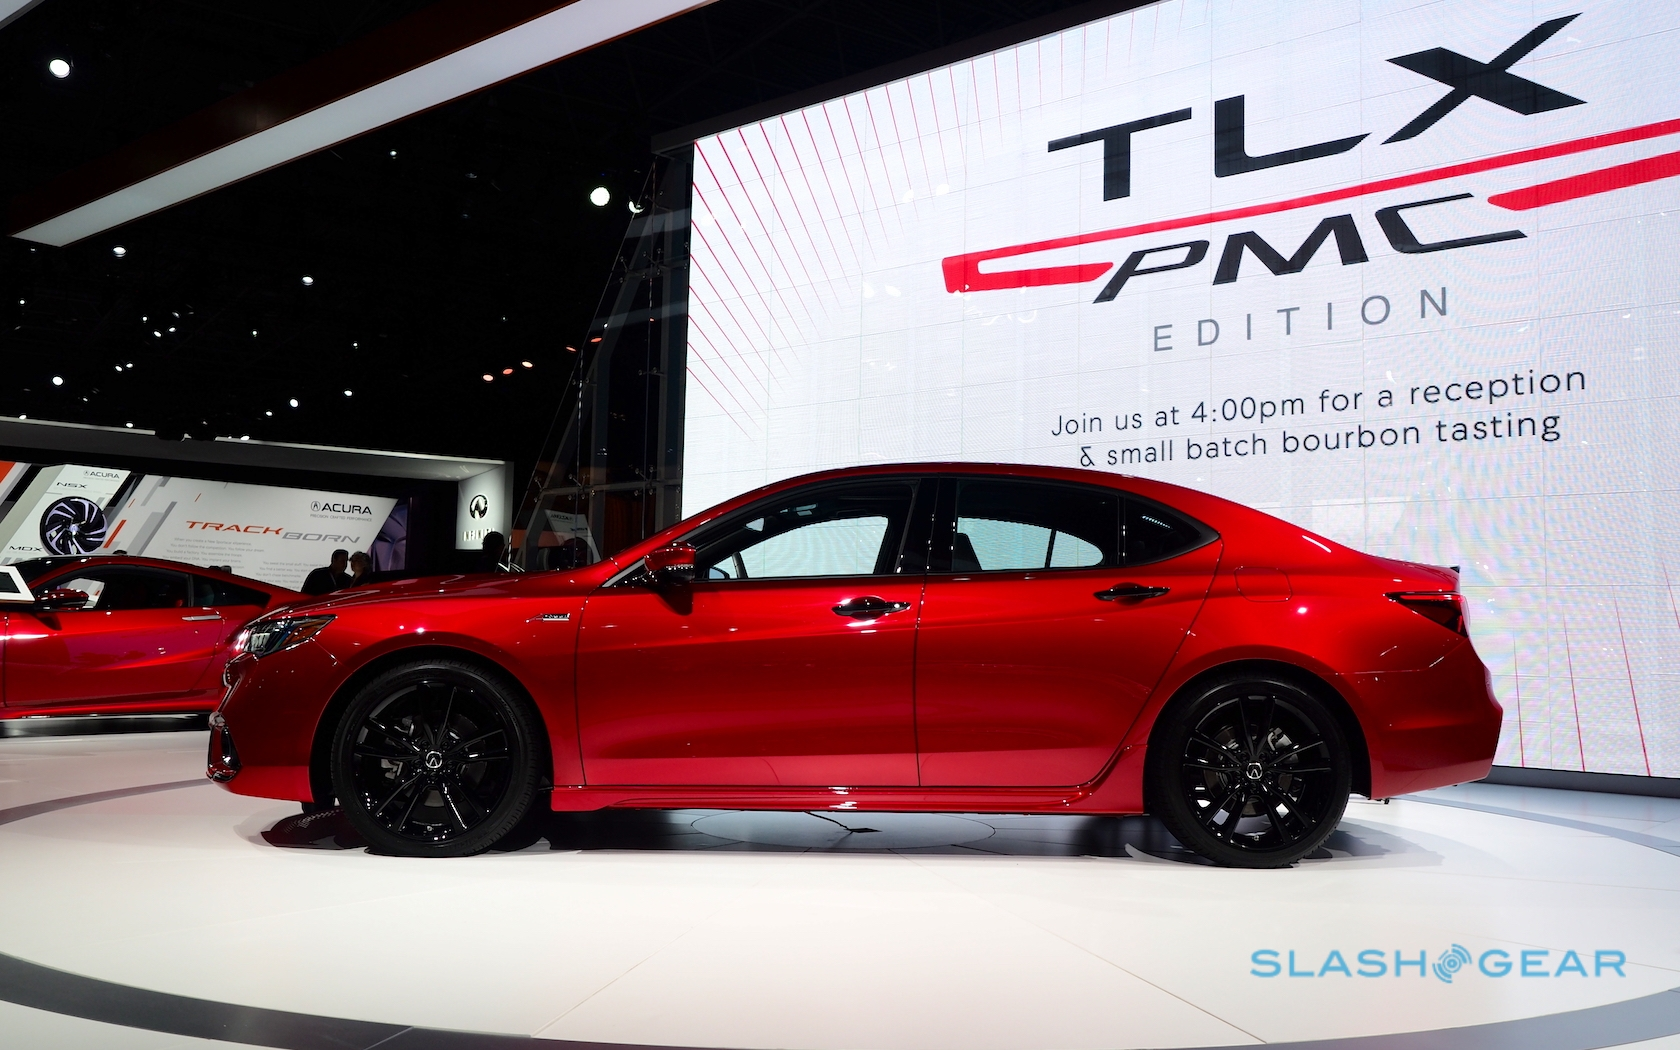 2020 acura tlx pmc edition gallery